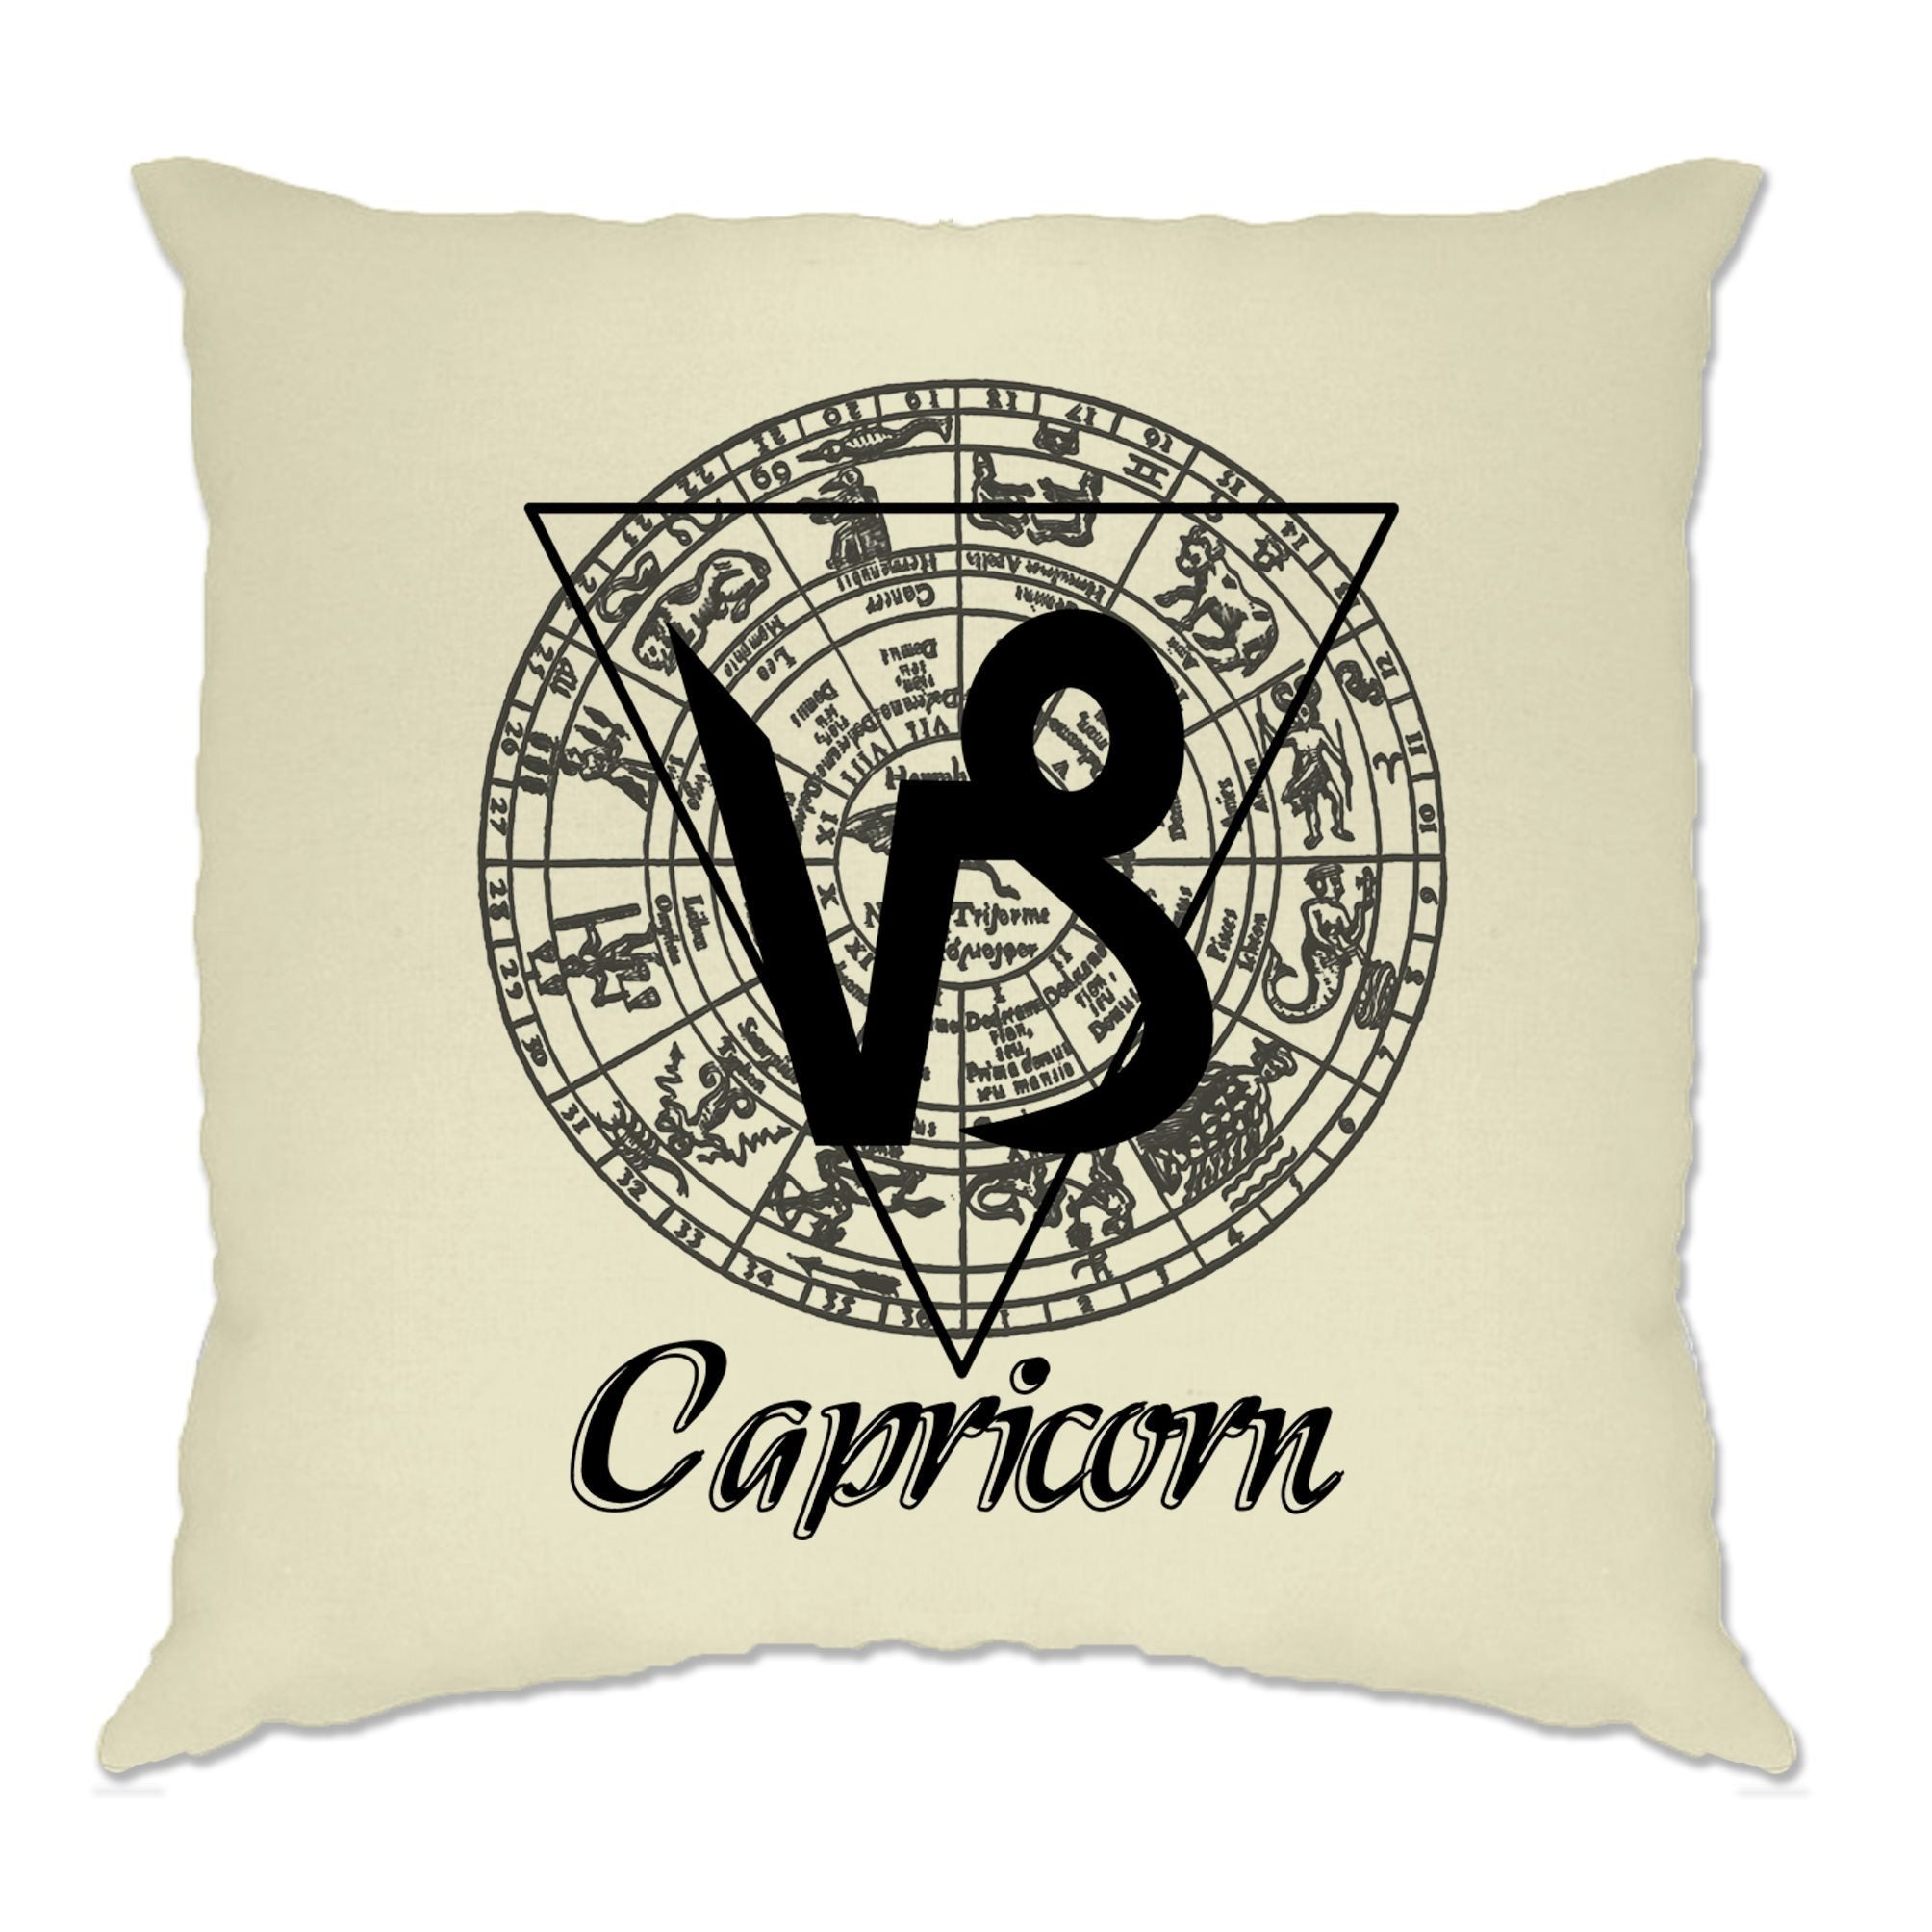 Horoscope Cushion Cover Capricorn Zodiac Star Sign Birthday